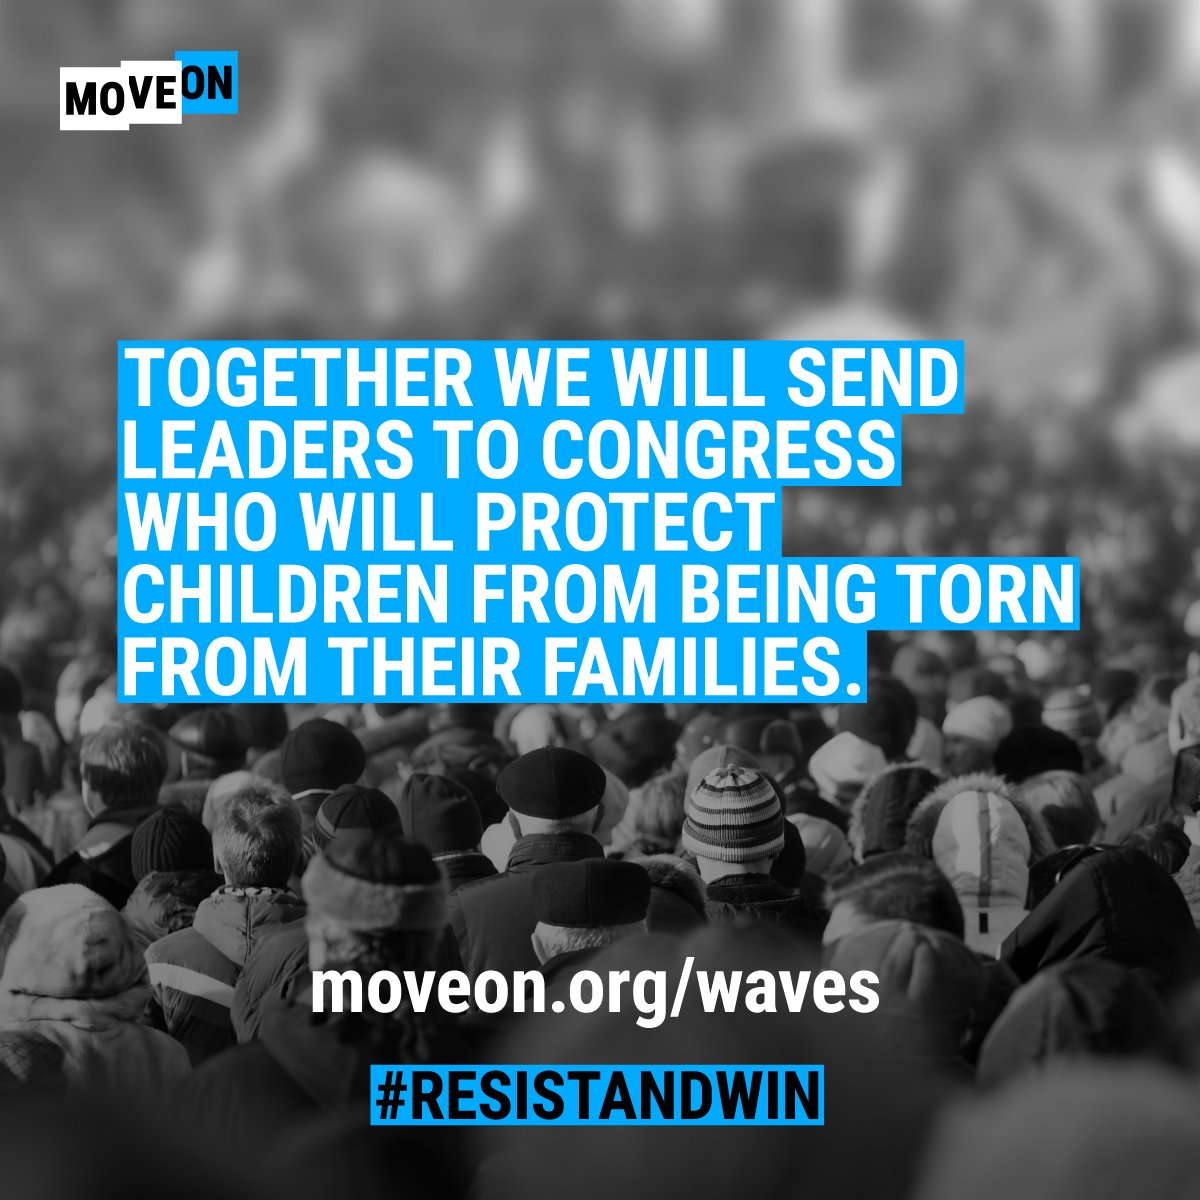 #ResistAndWin & end @GOP control of the House: https://t.co/git4PDTH1G